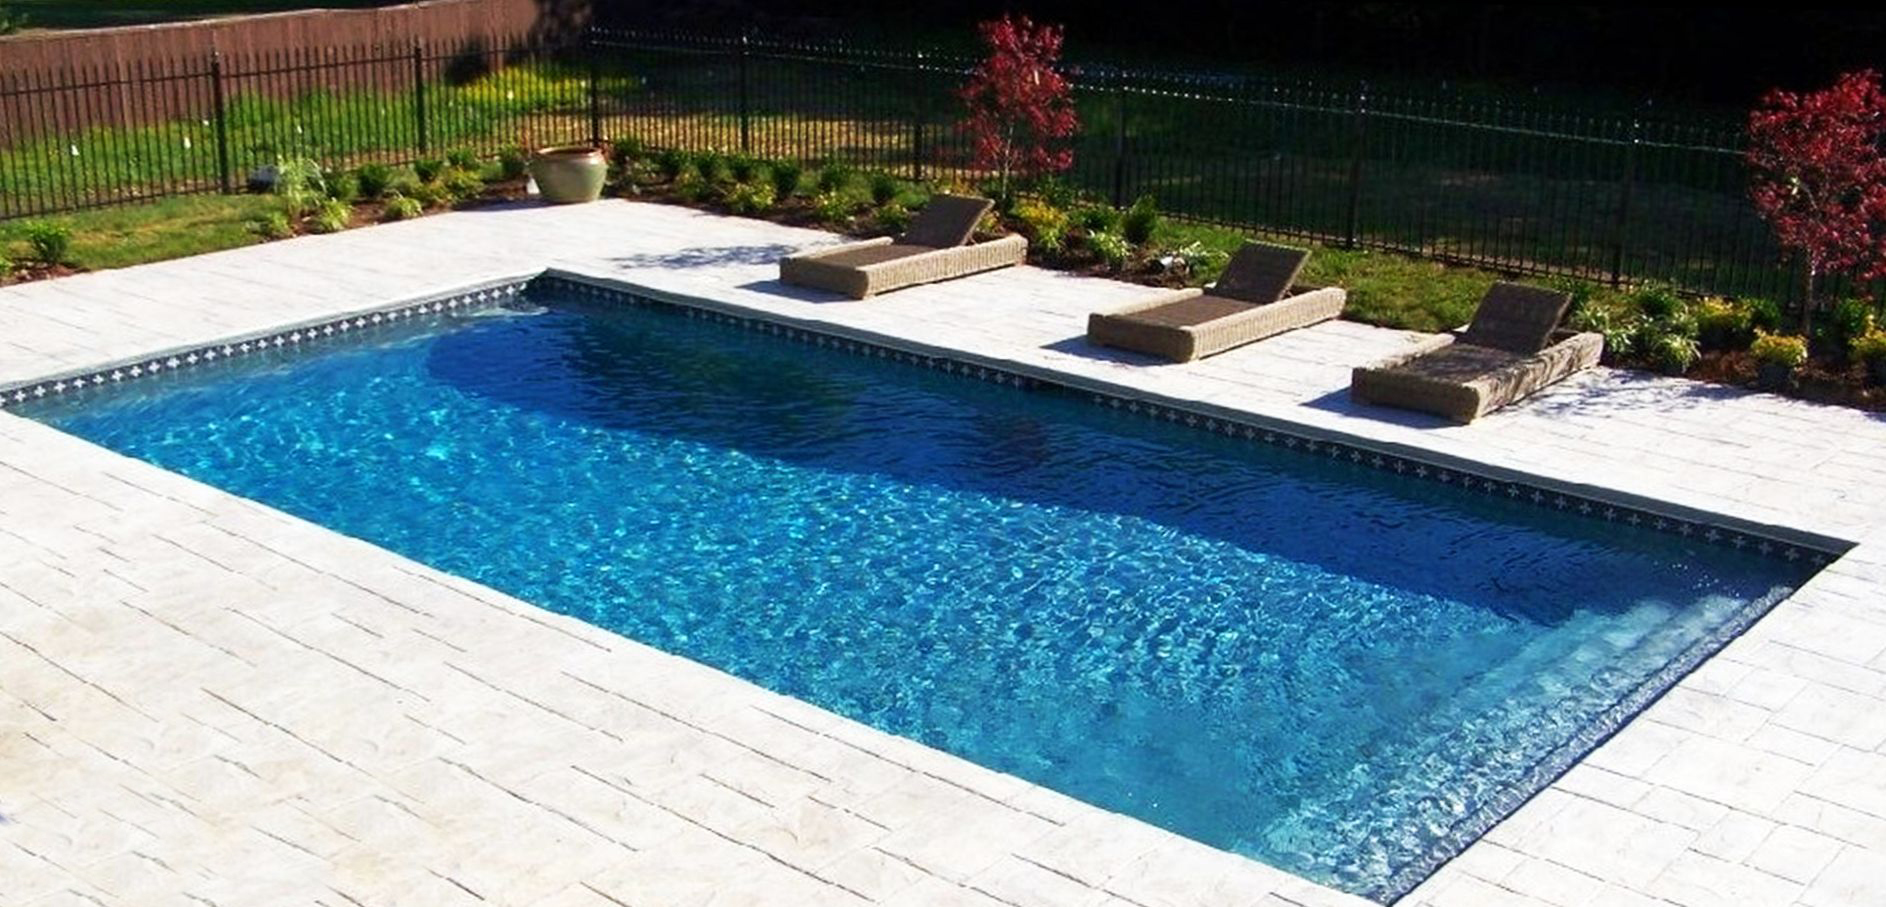 Custom Pool Builder Springdale Arkansas Inground Pool